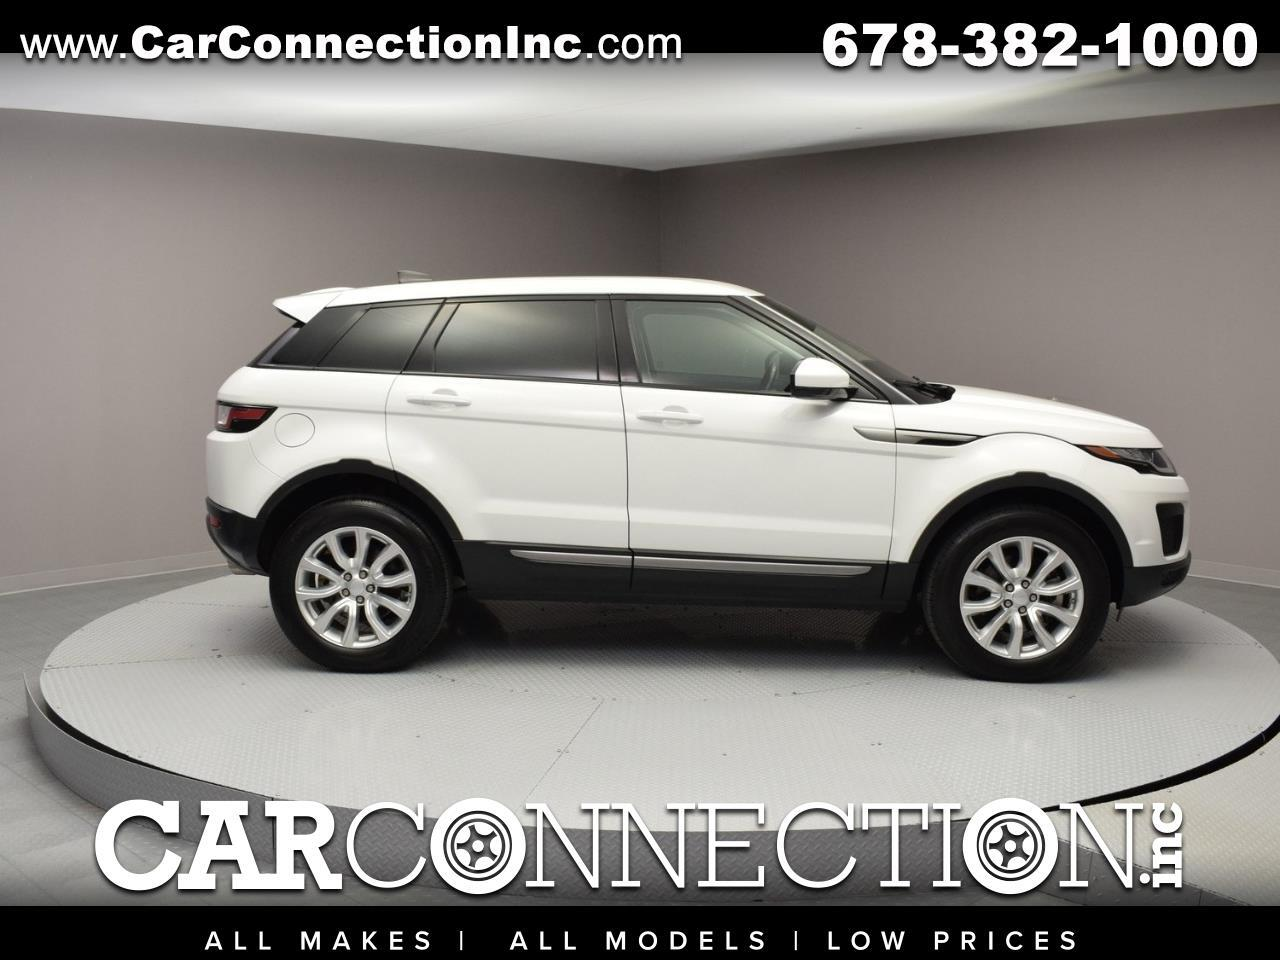 2019 Land Rover Range Rover Evoque 5 Door SE